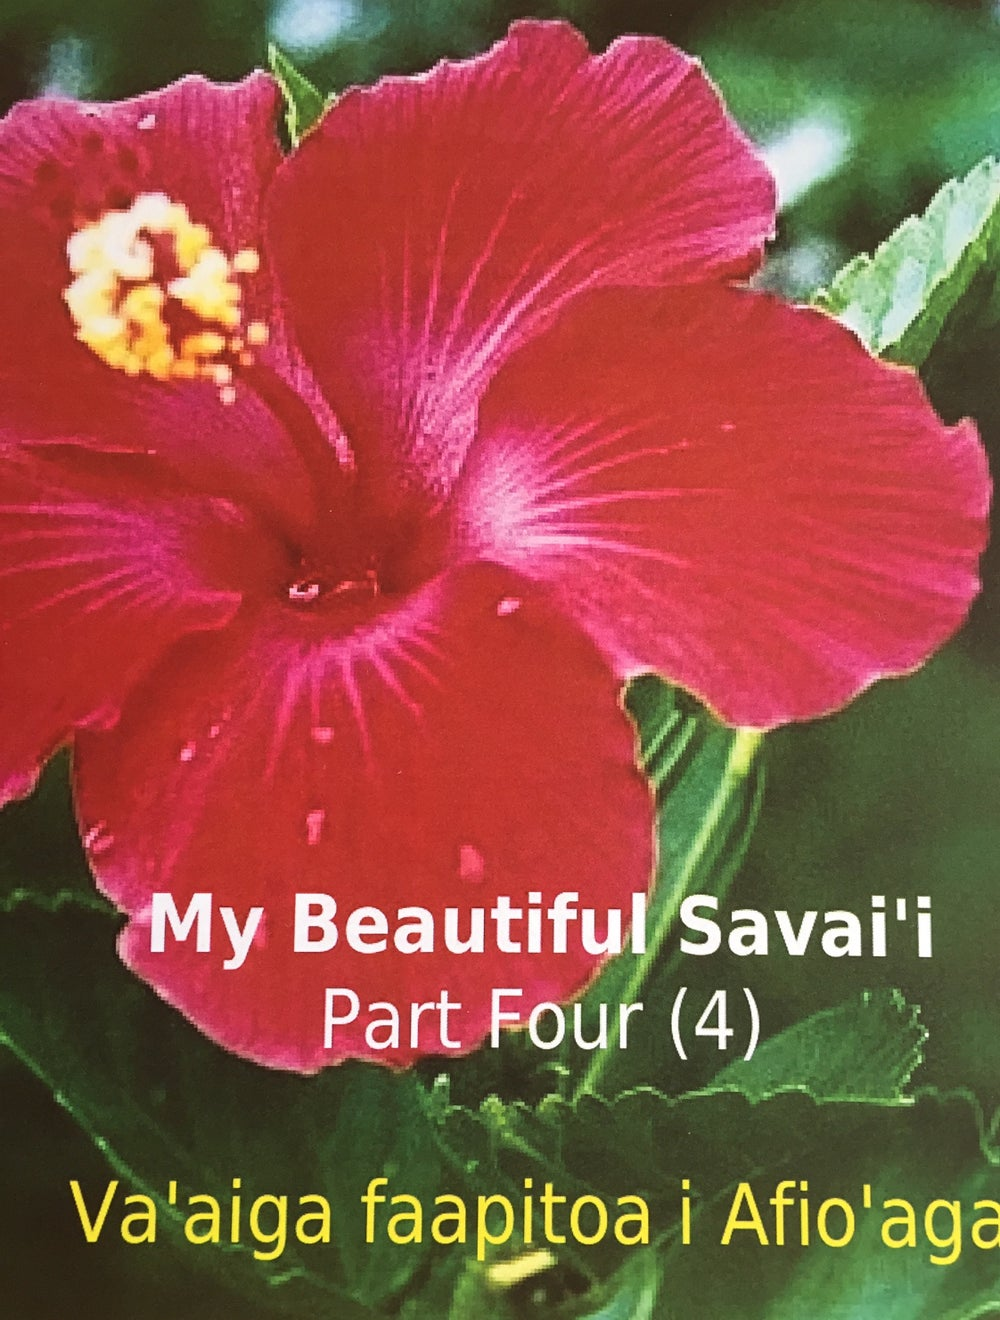 Image of My Beautiful Savaii 2